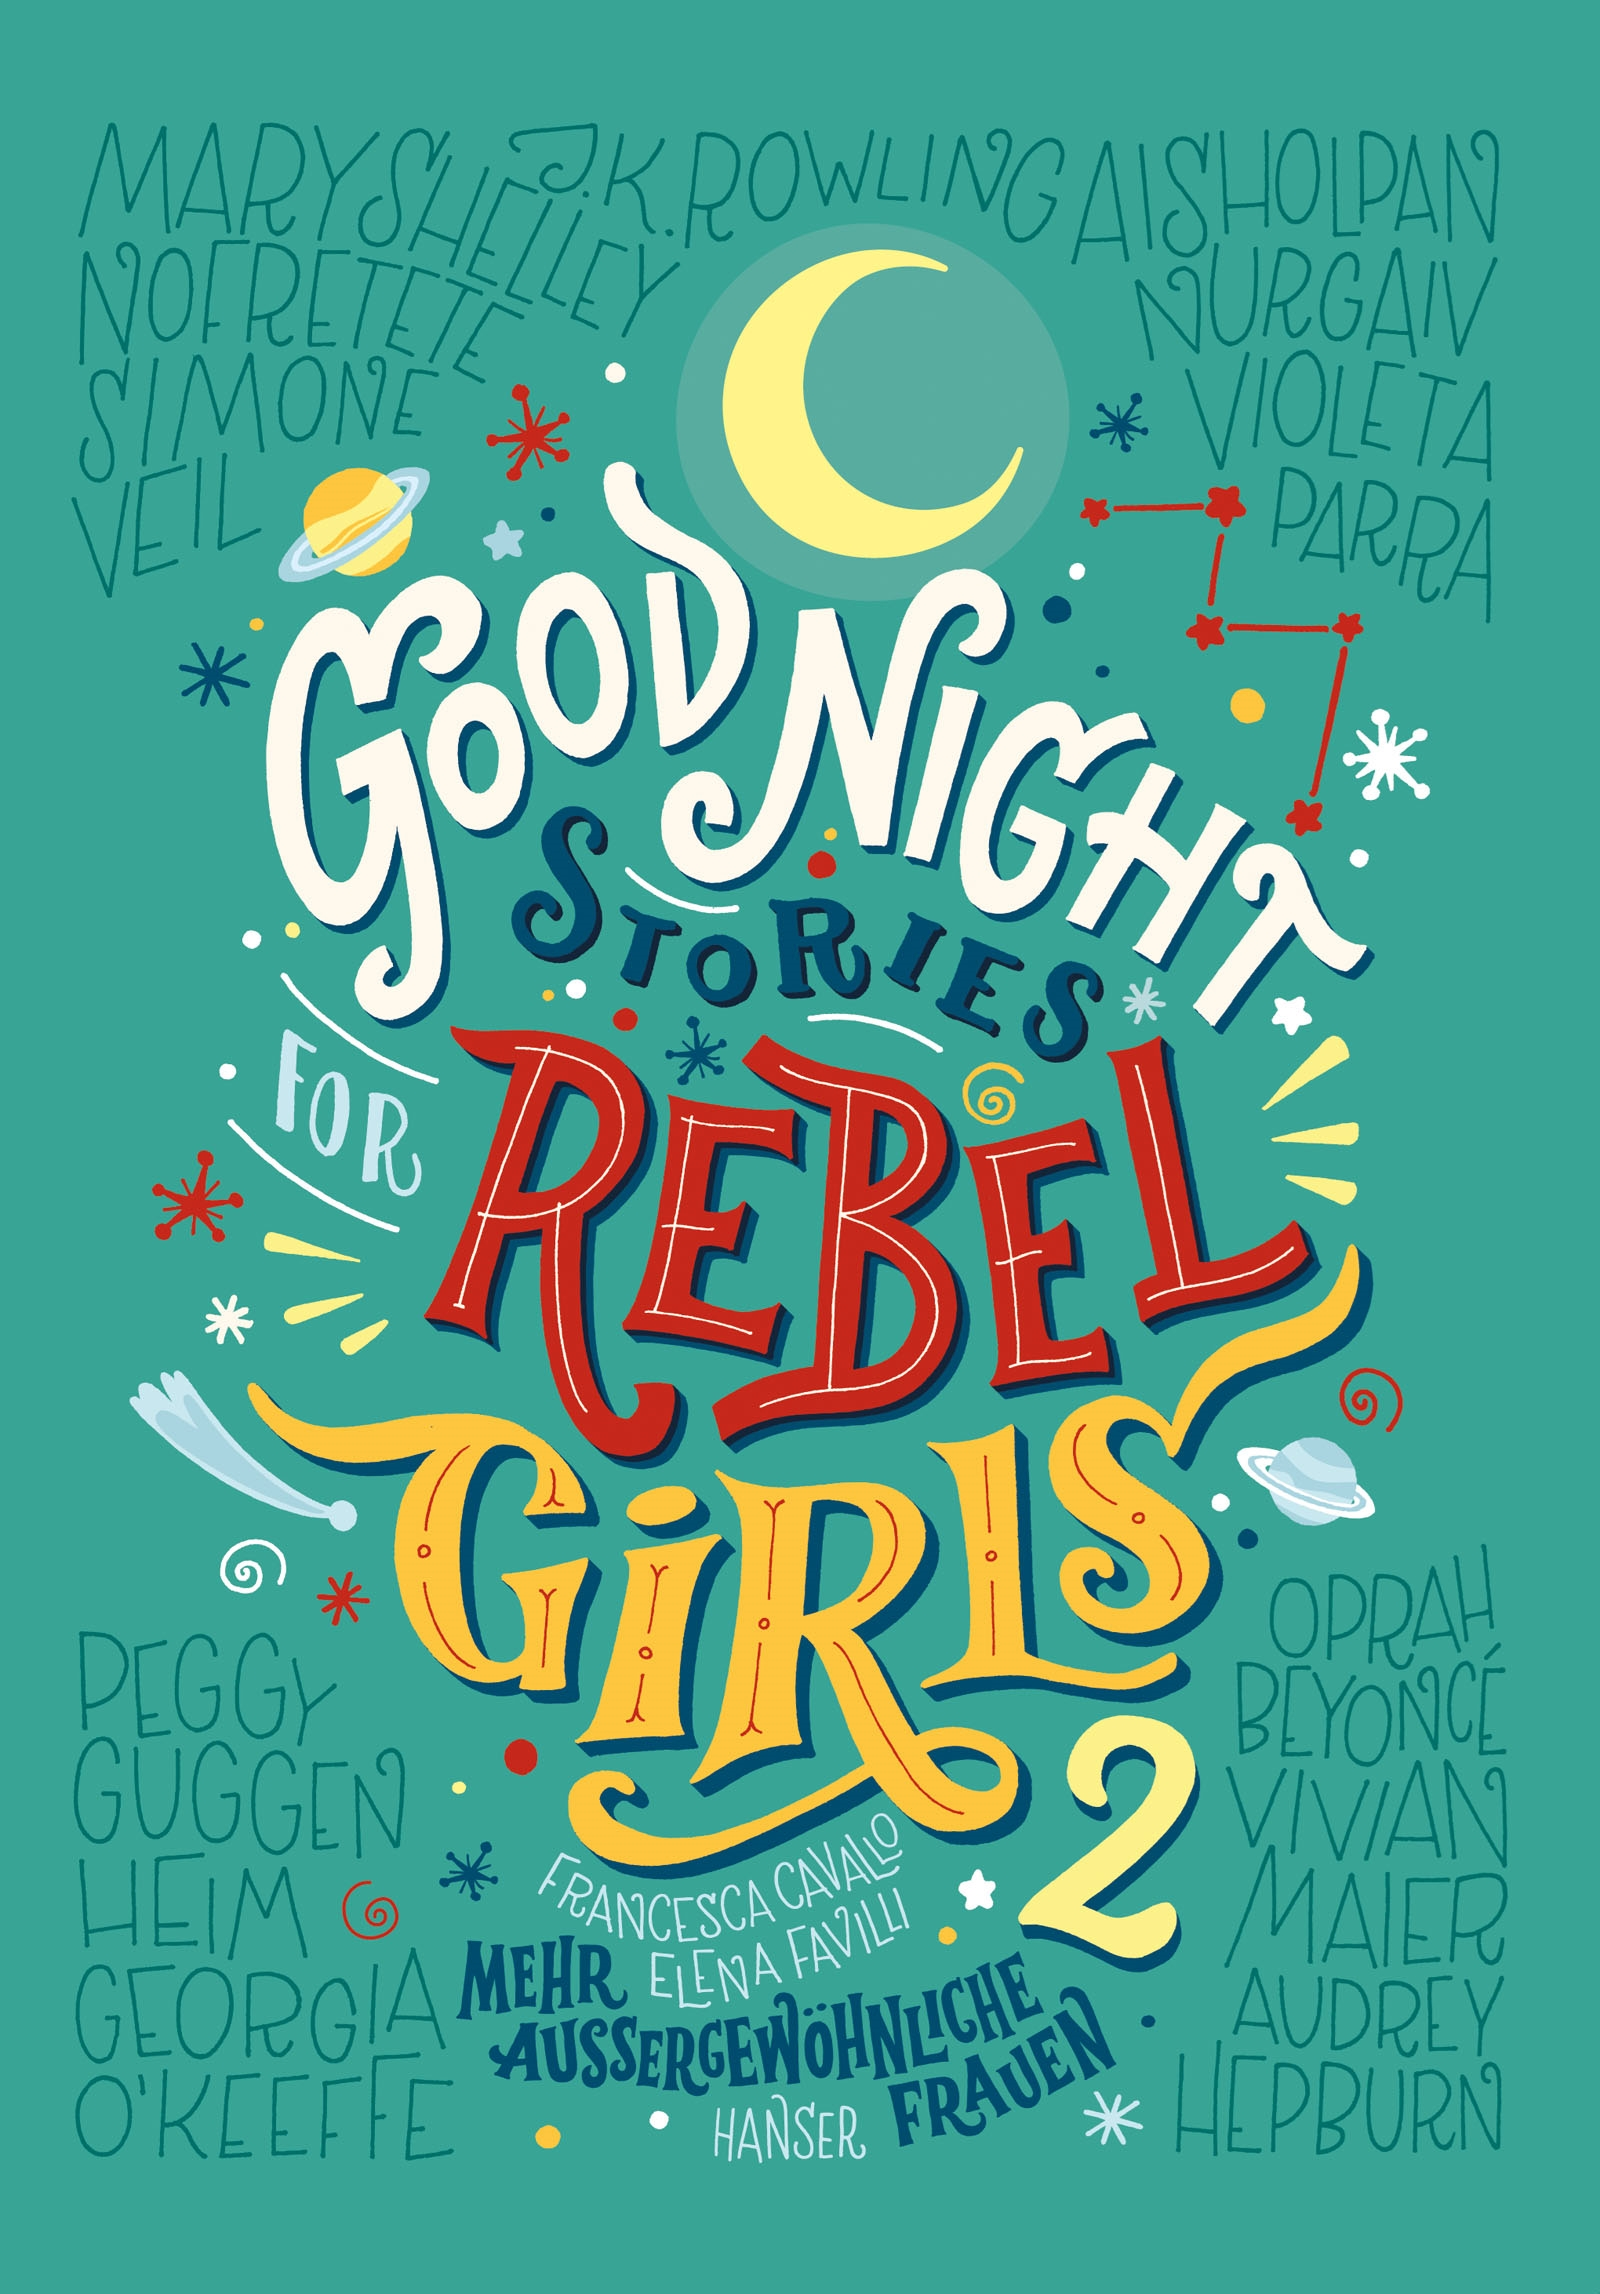 https://www.hanser-literaturverlage.de/buch/good-night-stories-for-rebel-girls-2/978-3-446-26106-8/